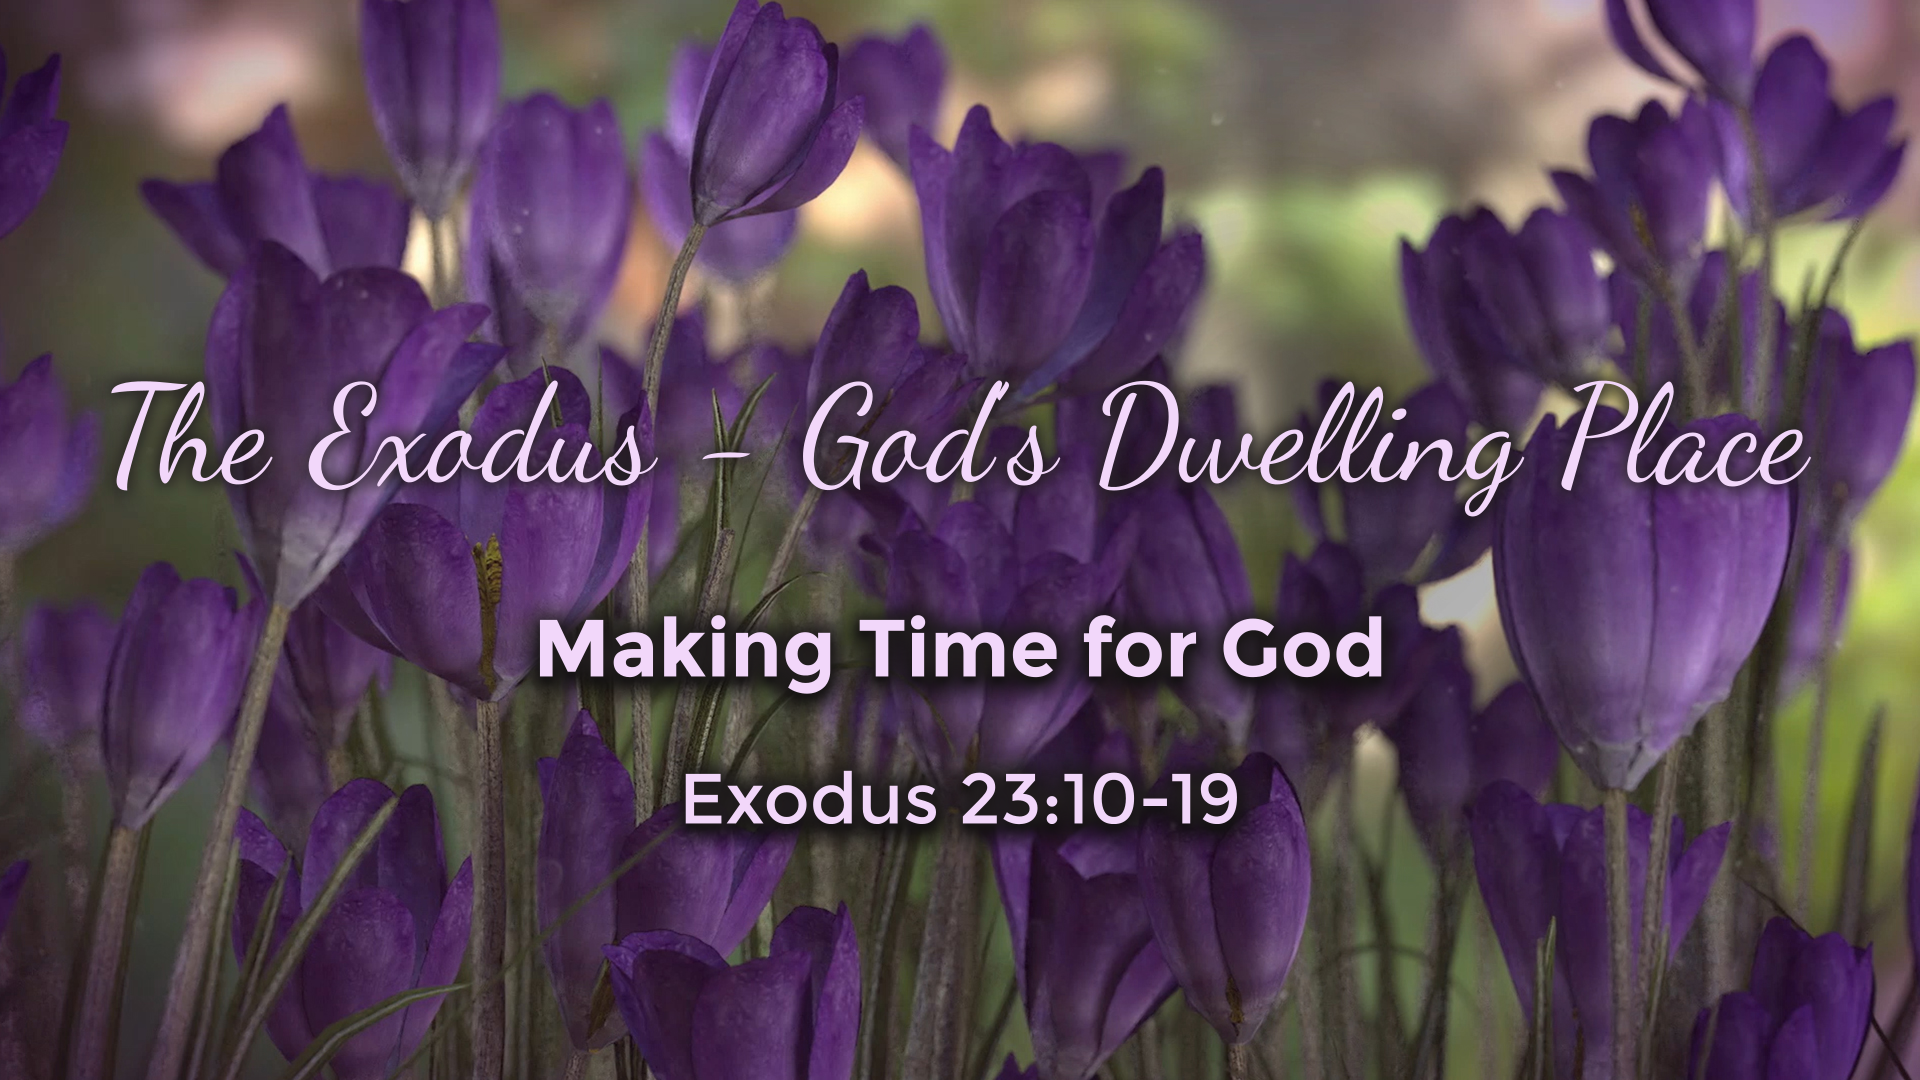 Image for the sermon Making Time for God